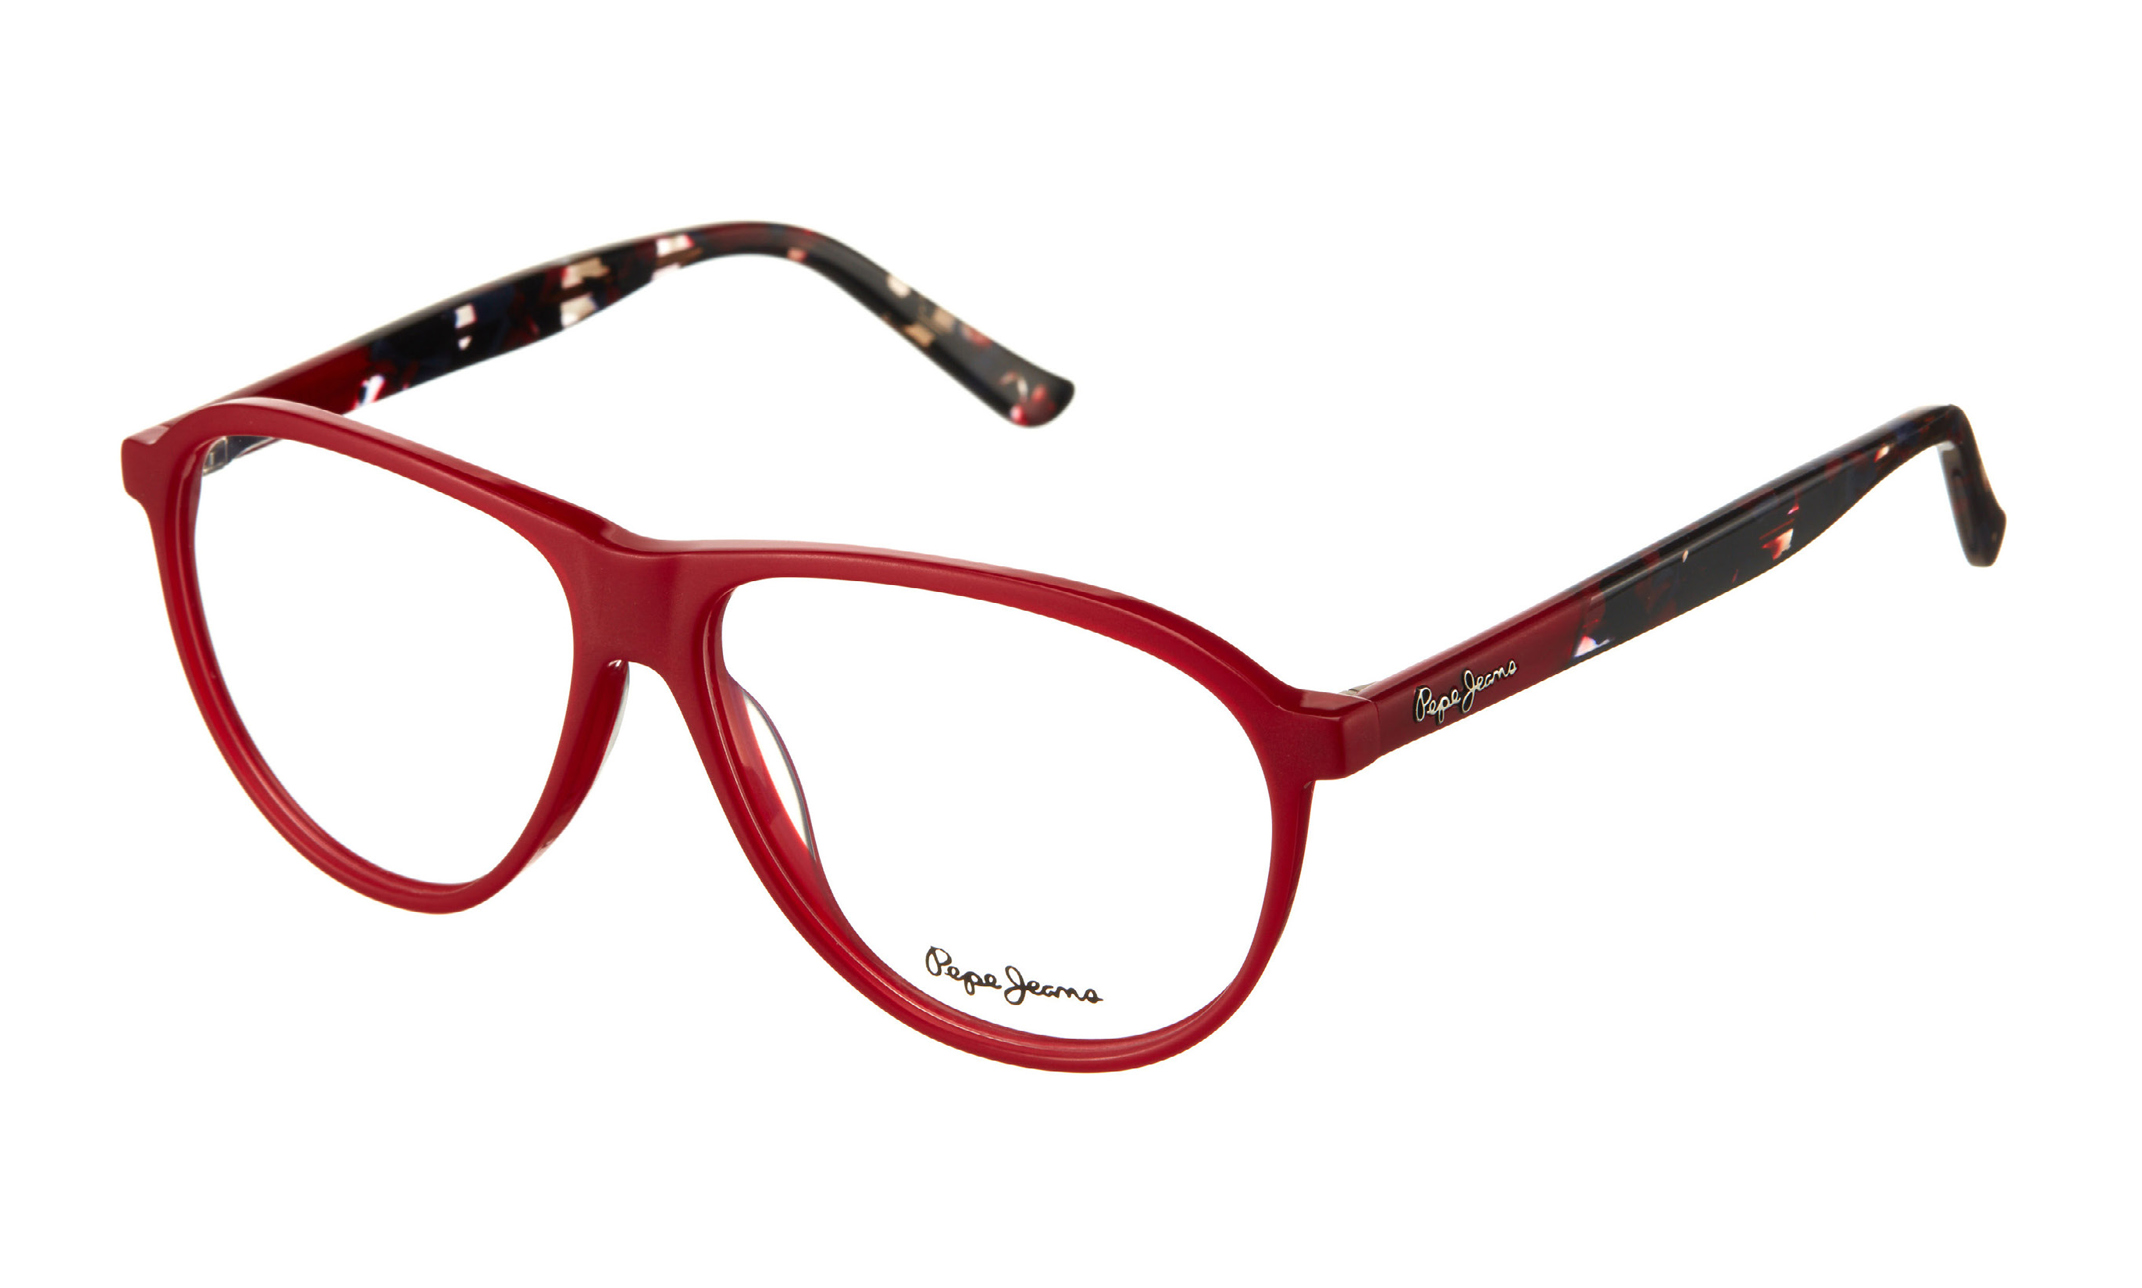 Pepe Jeans optical